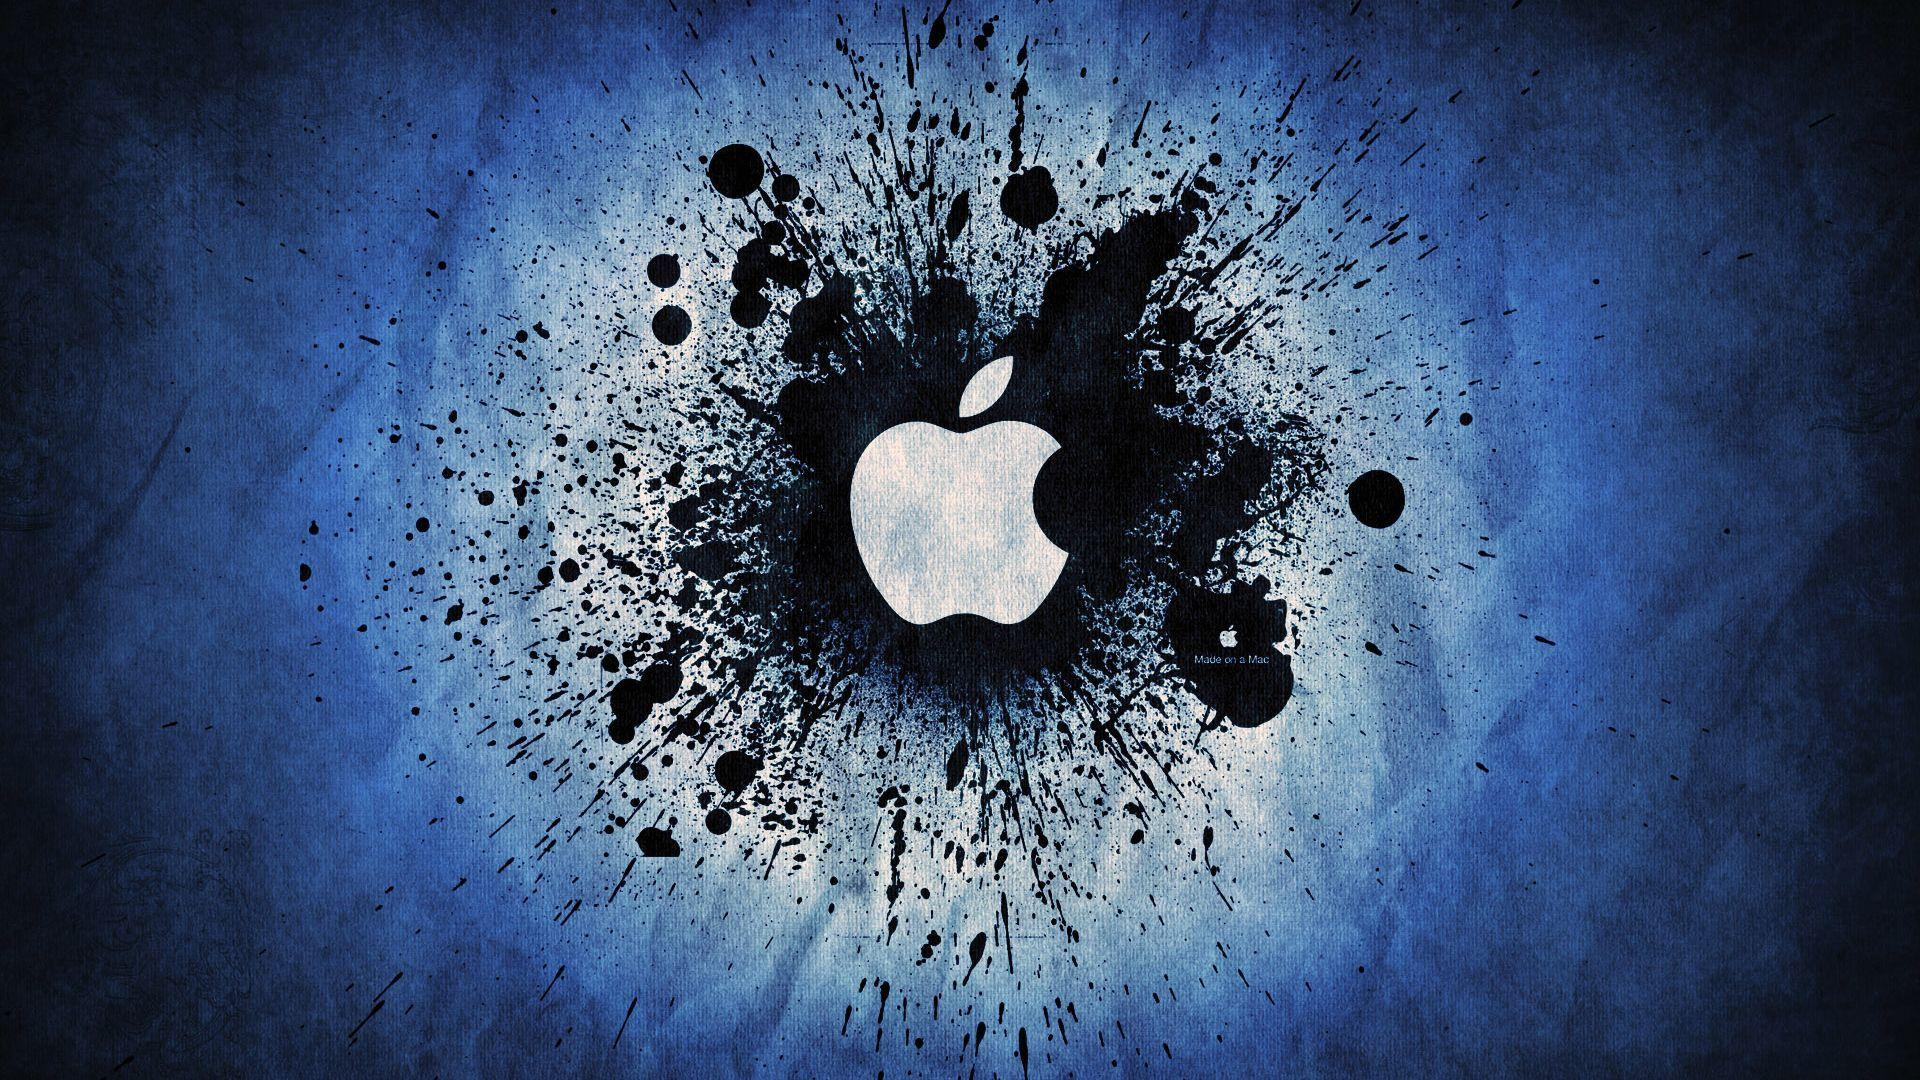 1080p hd wallpapers apple logo blue backgrounds